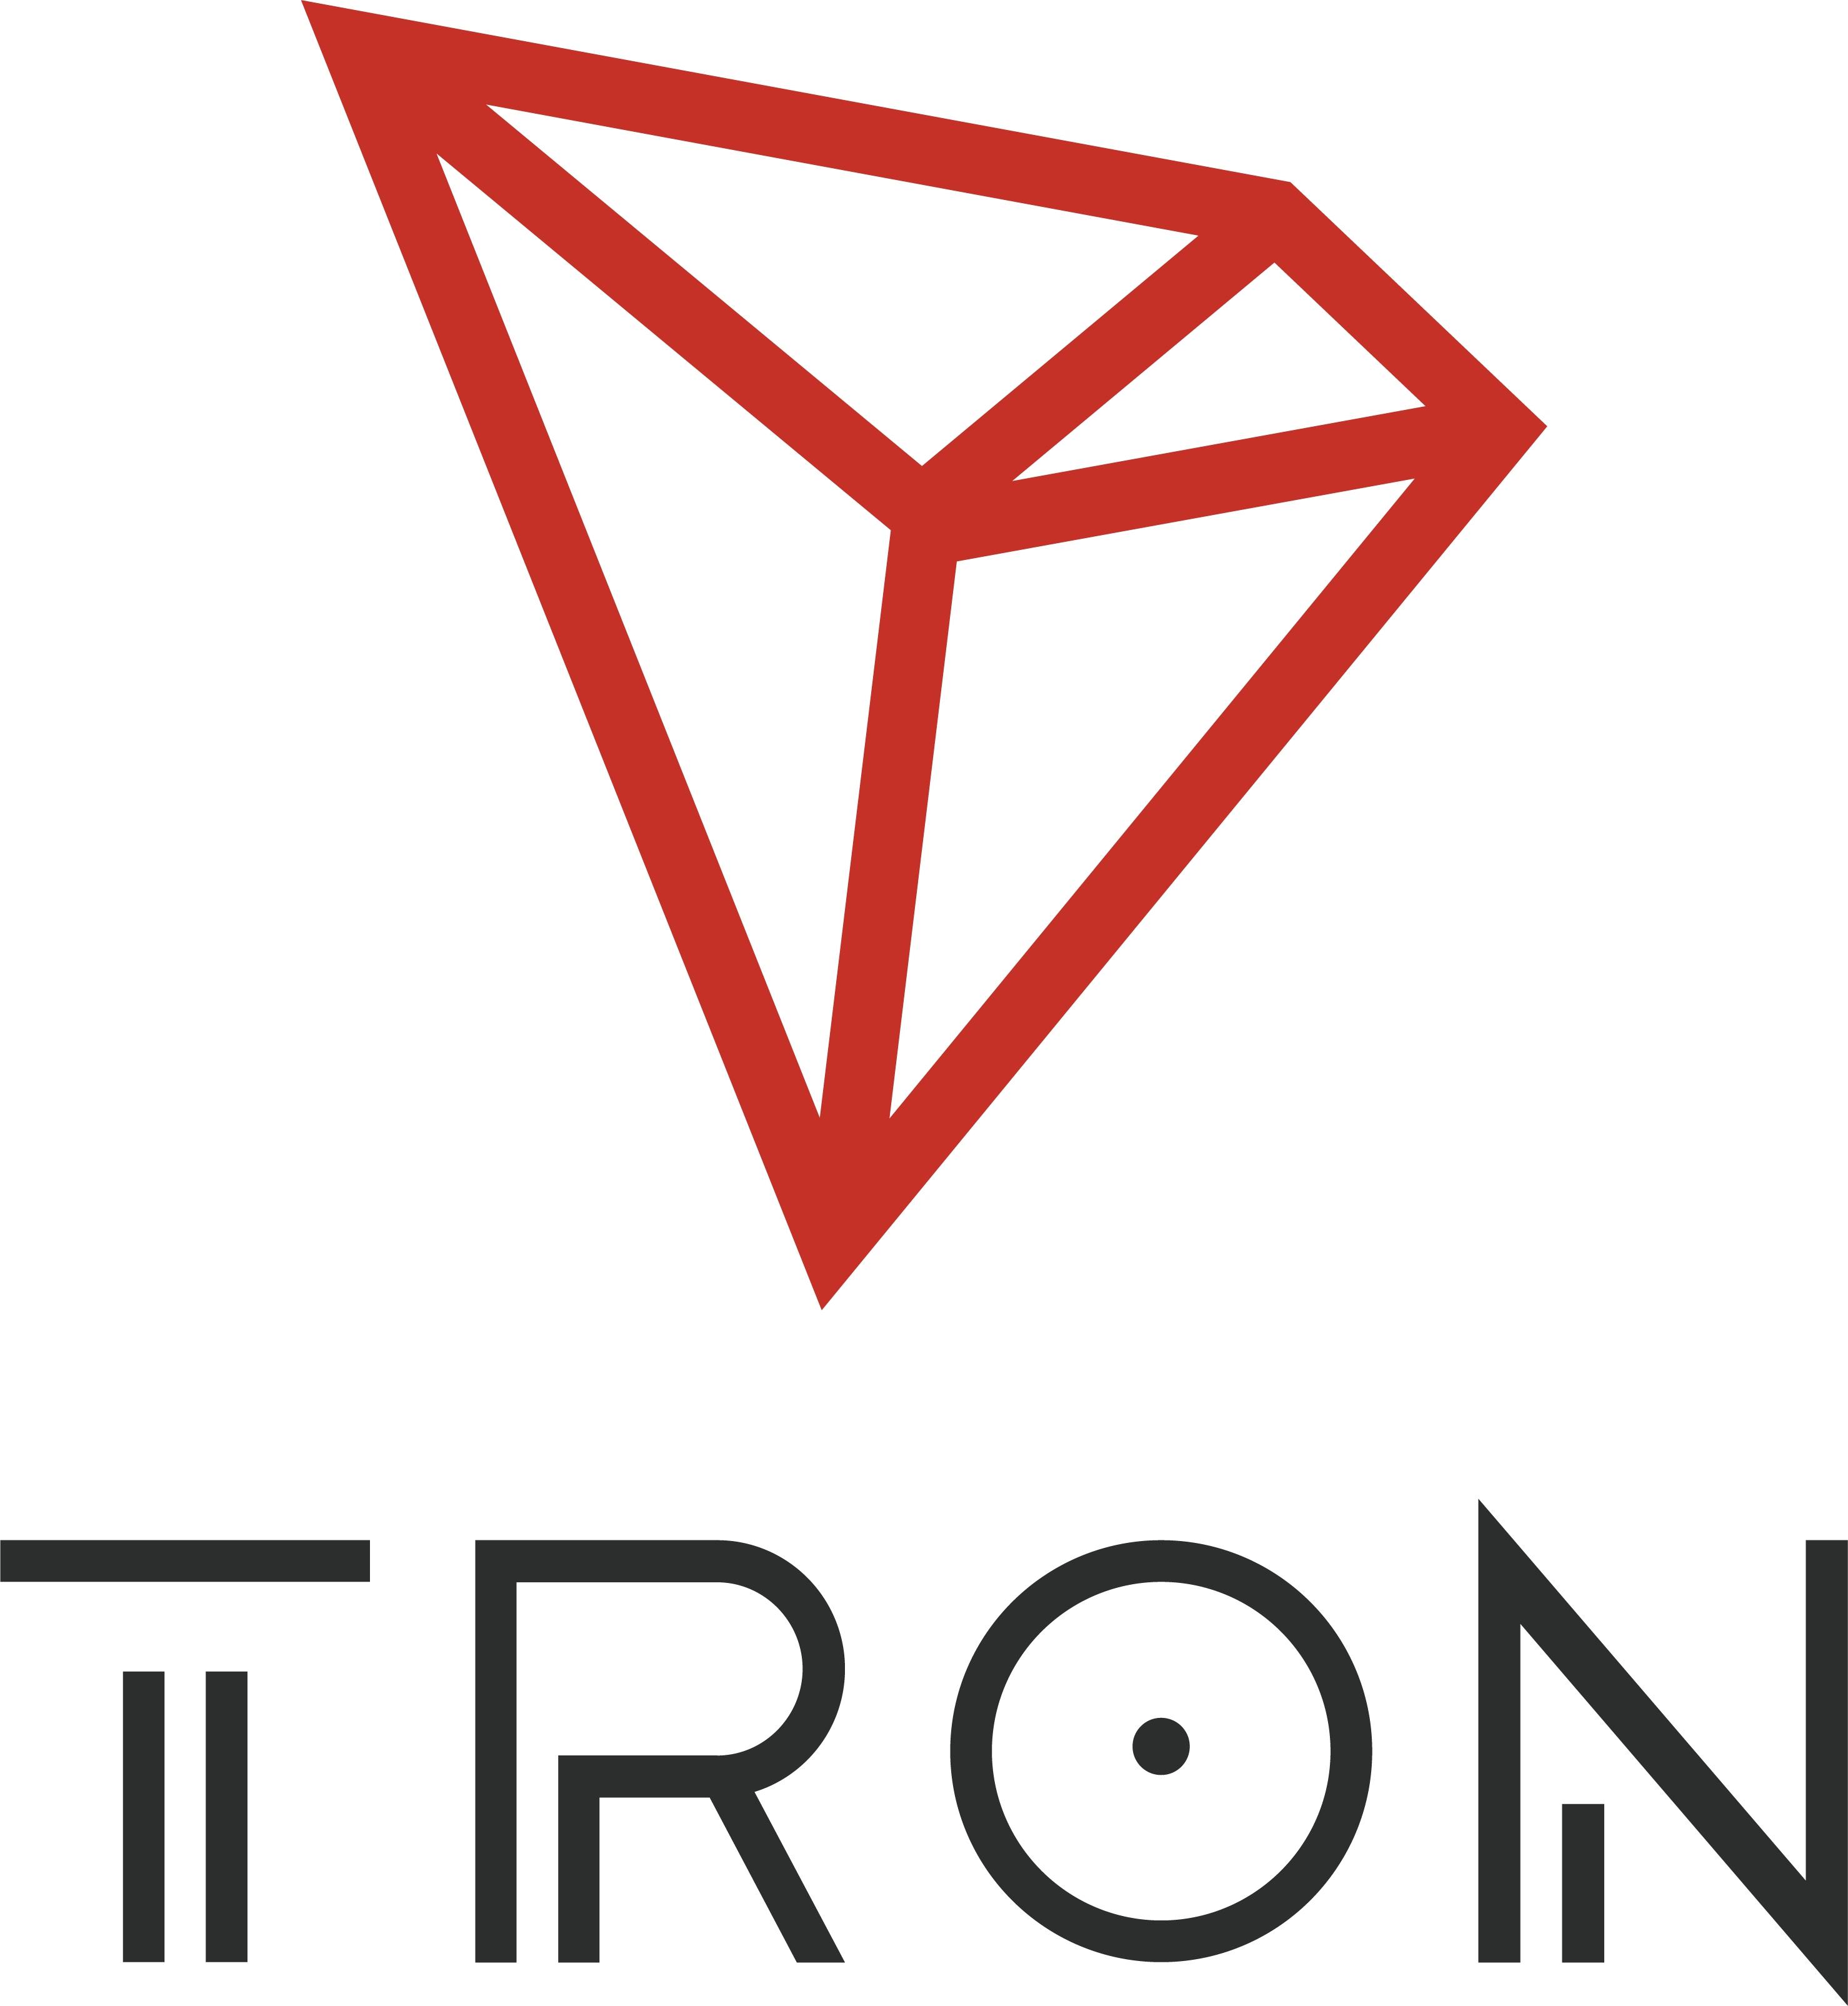 TRON TRX Coin – Review of Tronix, Price, ICO, Wallet – BitcoinWiki